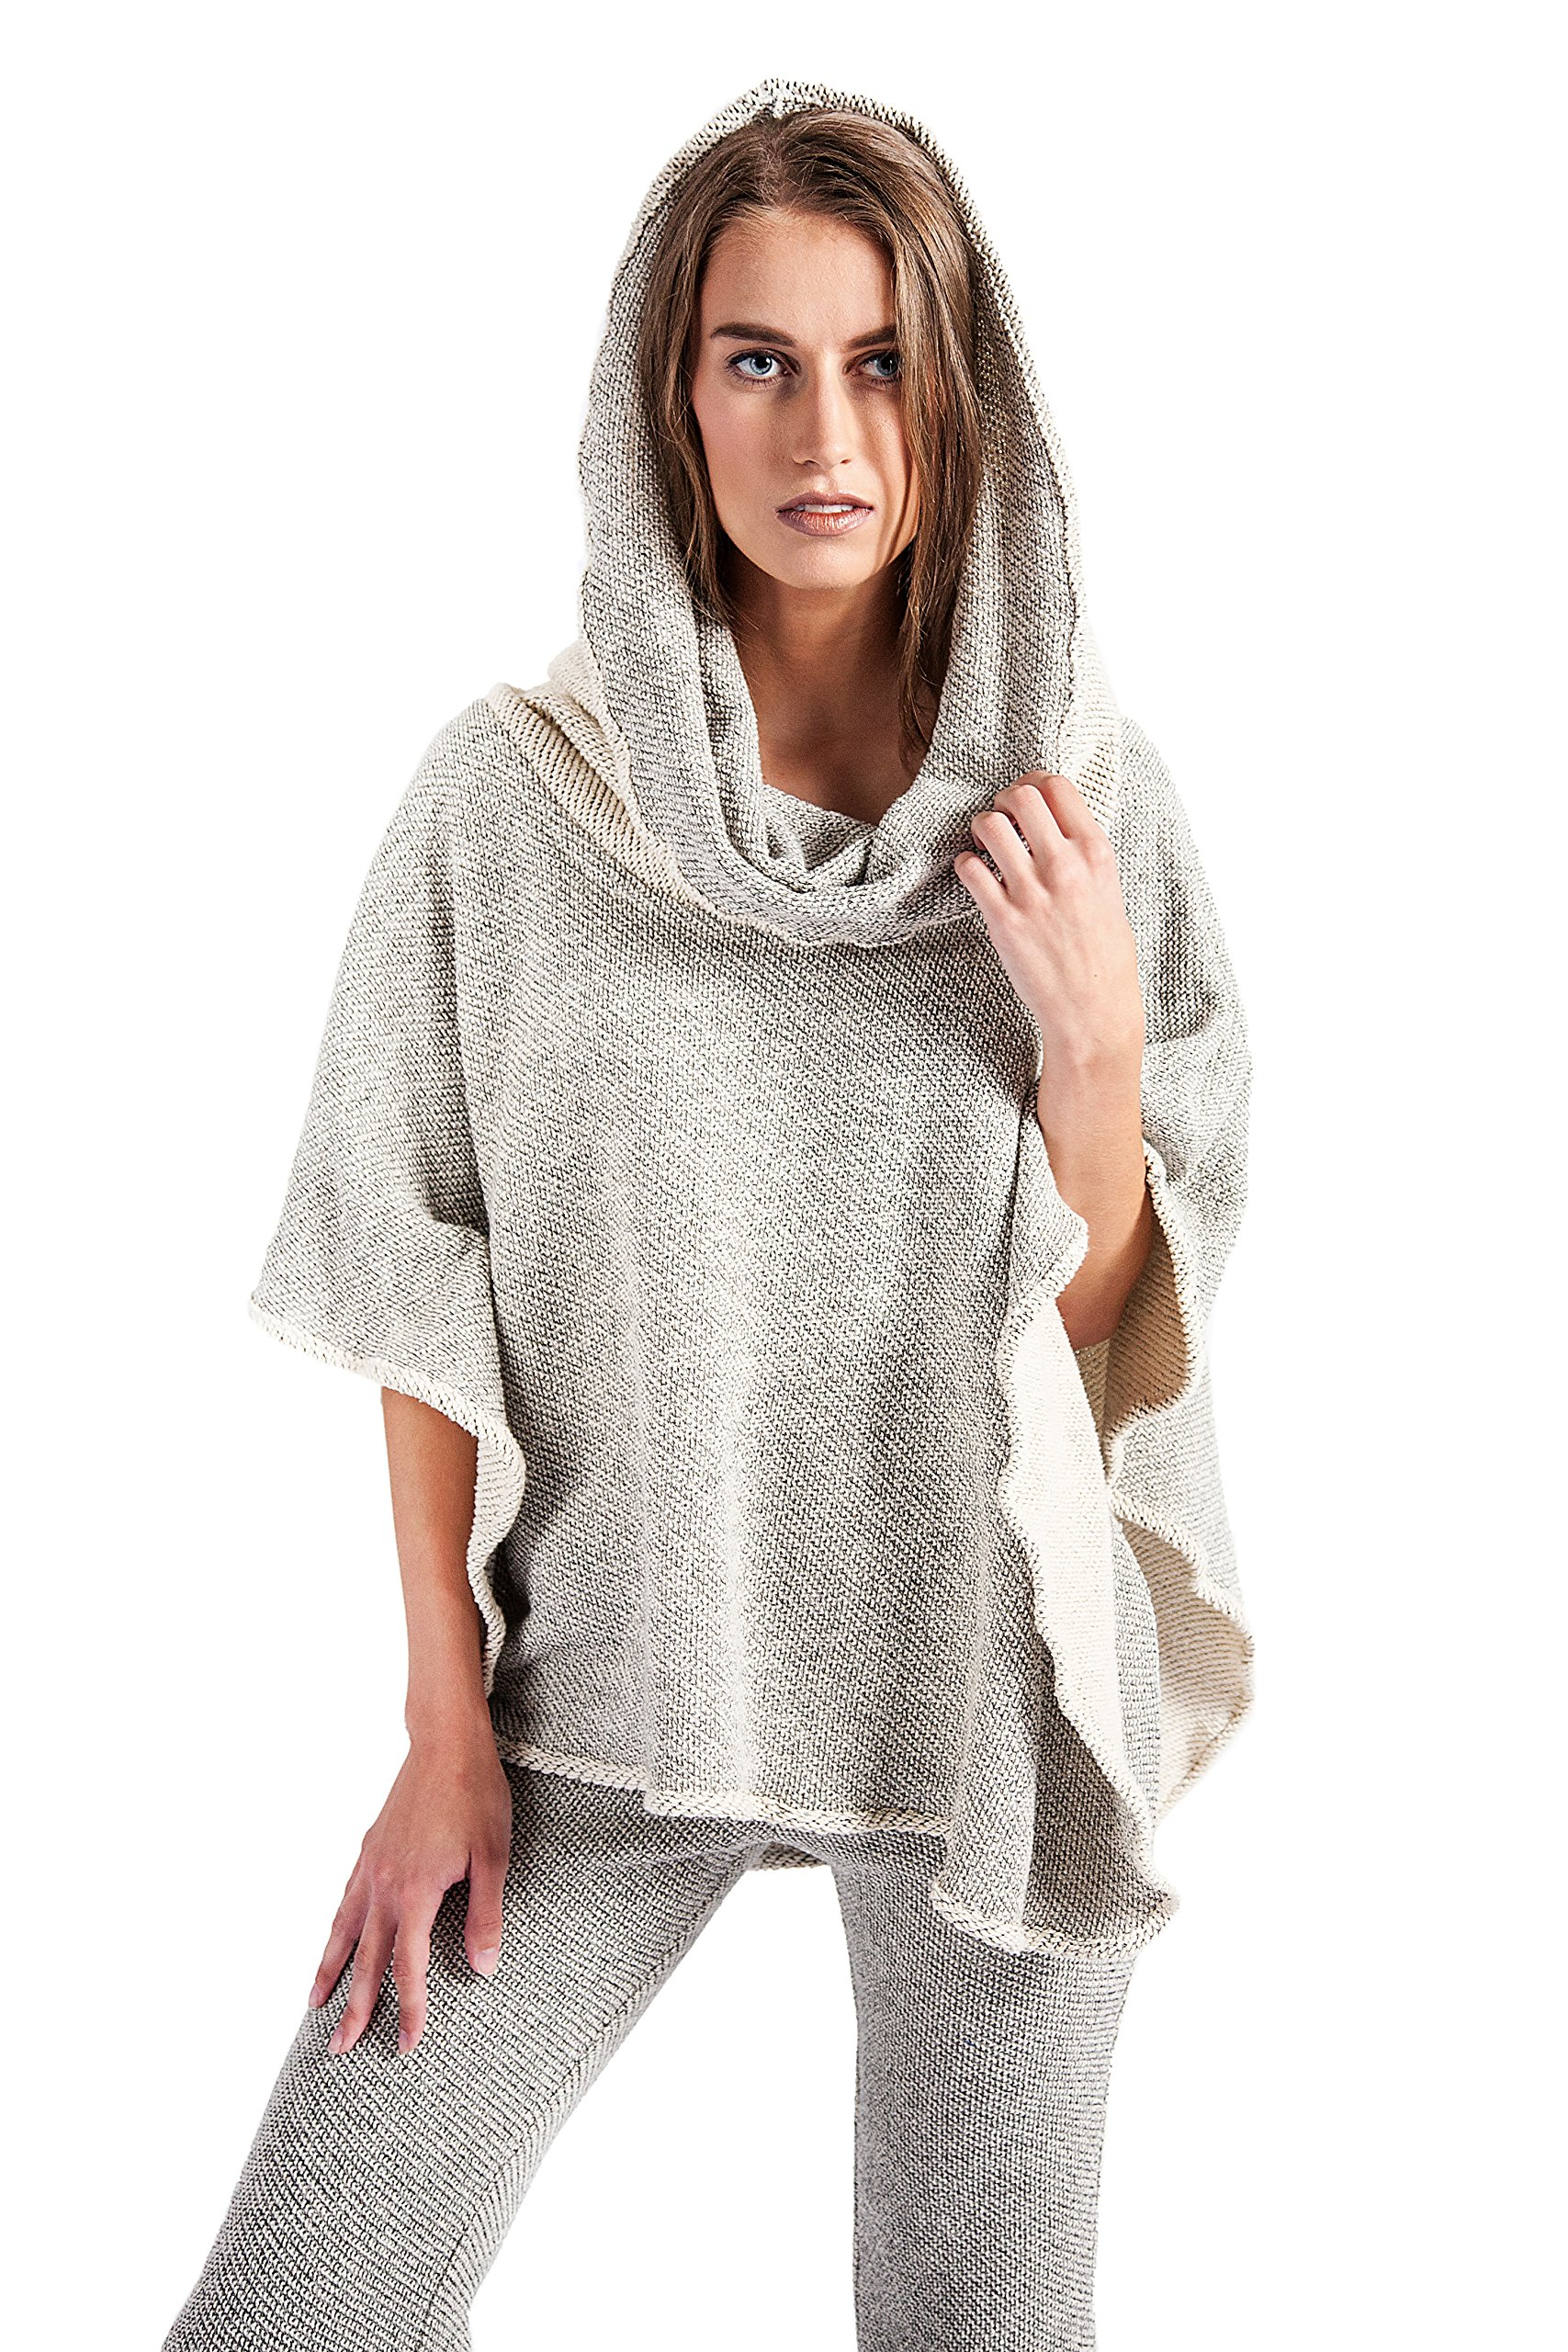 HOODIE PONCH Heidi Hess Designer Poncho Sweater Converts Into Scarf, Hoodie or Top - Mesh Me Up, One Size